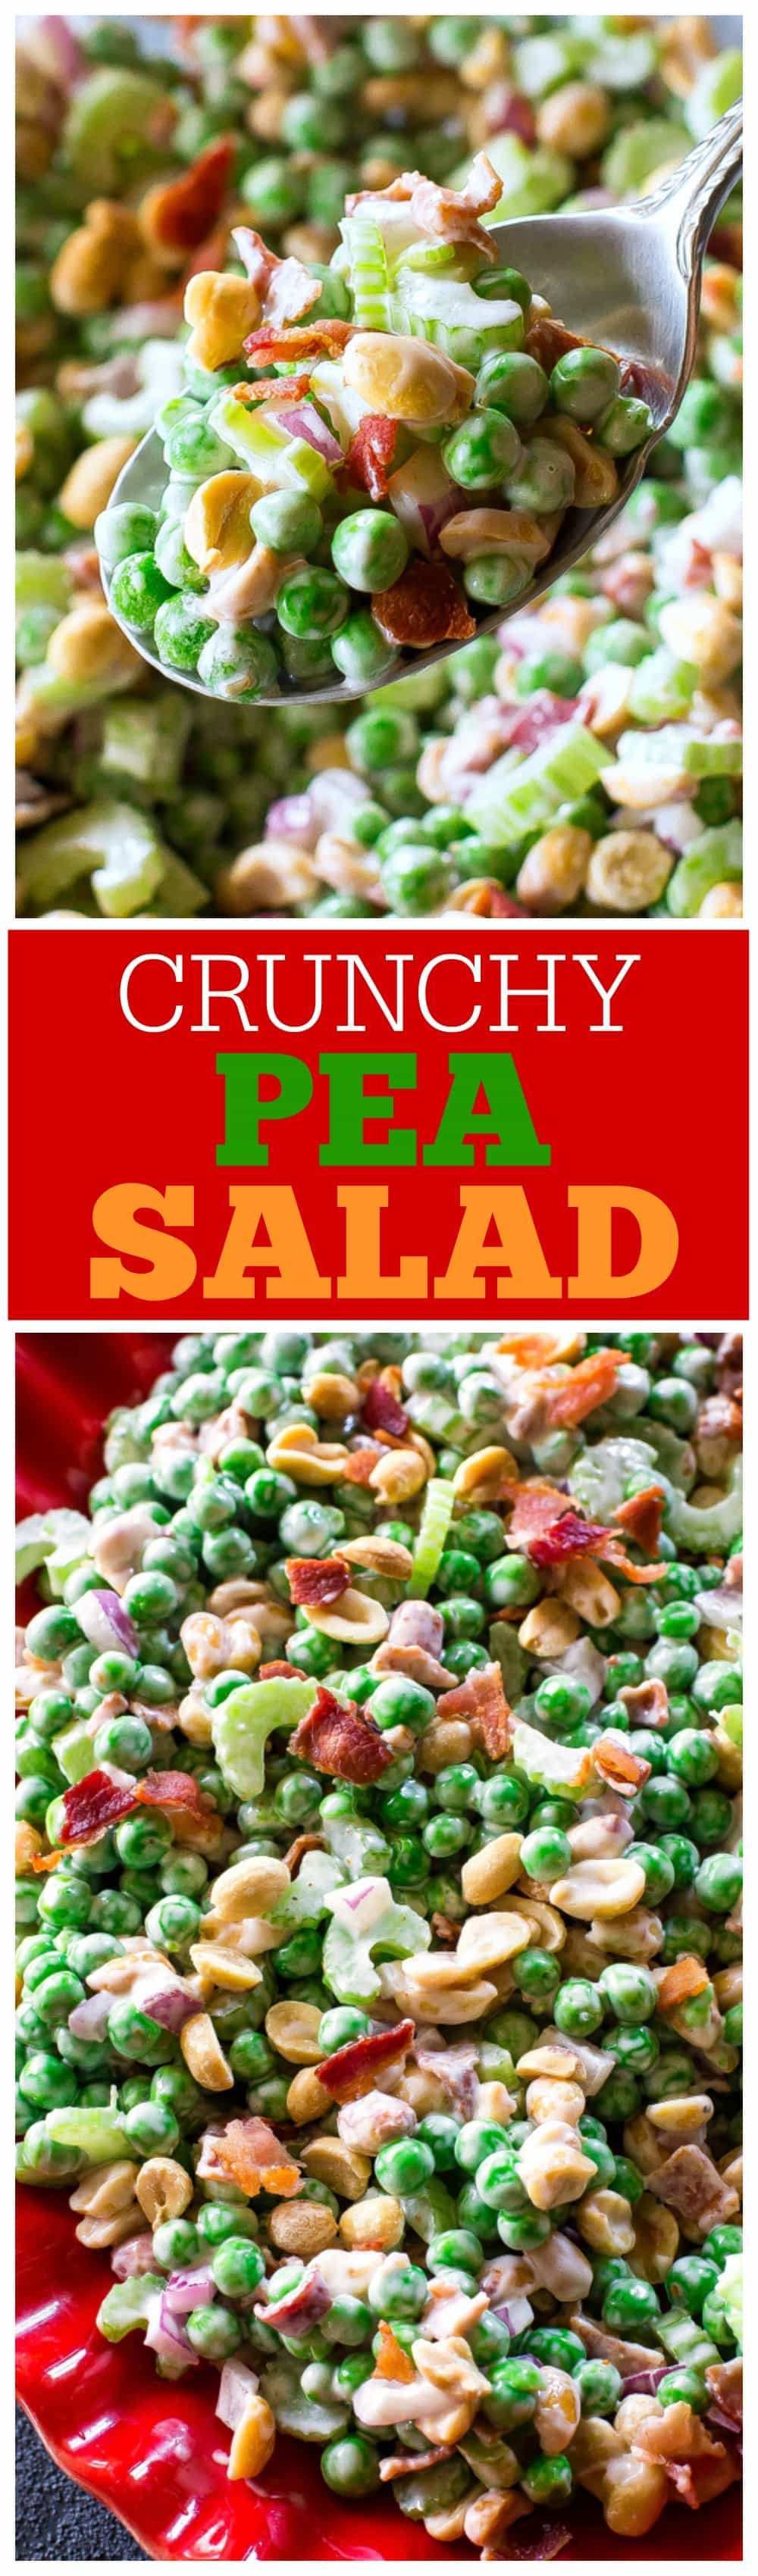 This Crunchy Pea Salad may sound weird but trust me, it's so good! Peas, peanuts, bacon, celery...all for a refreshing salad. This recipe is a potluck favorite! #pea #salad #potluck #bbq